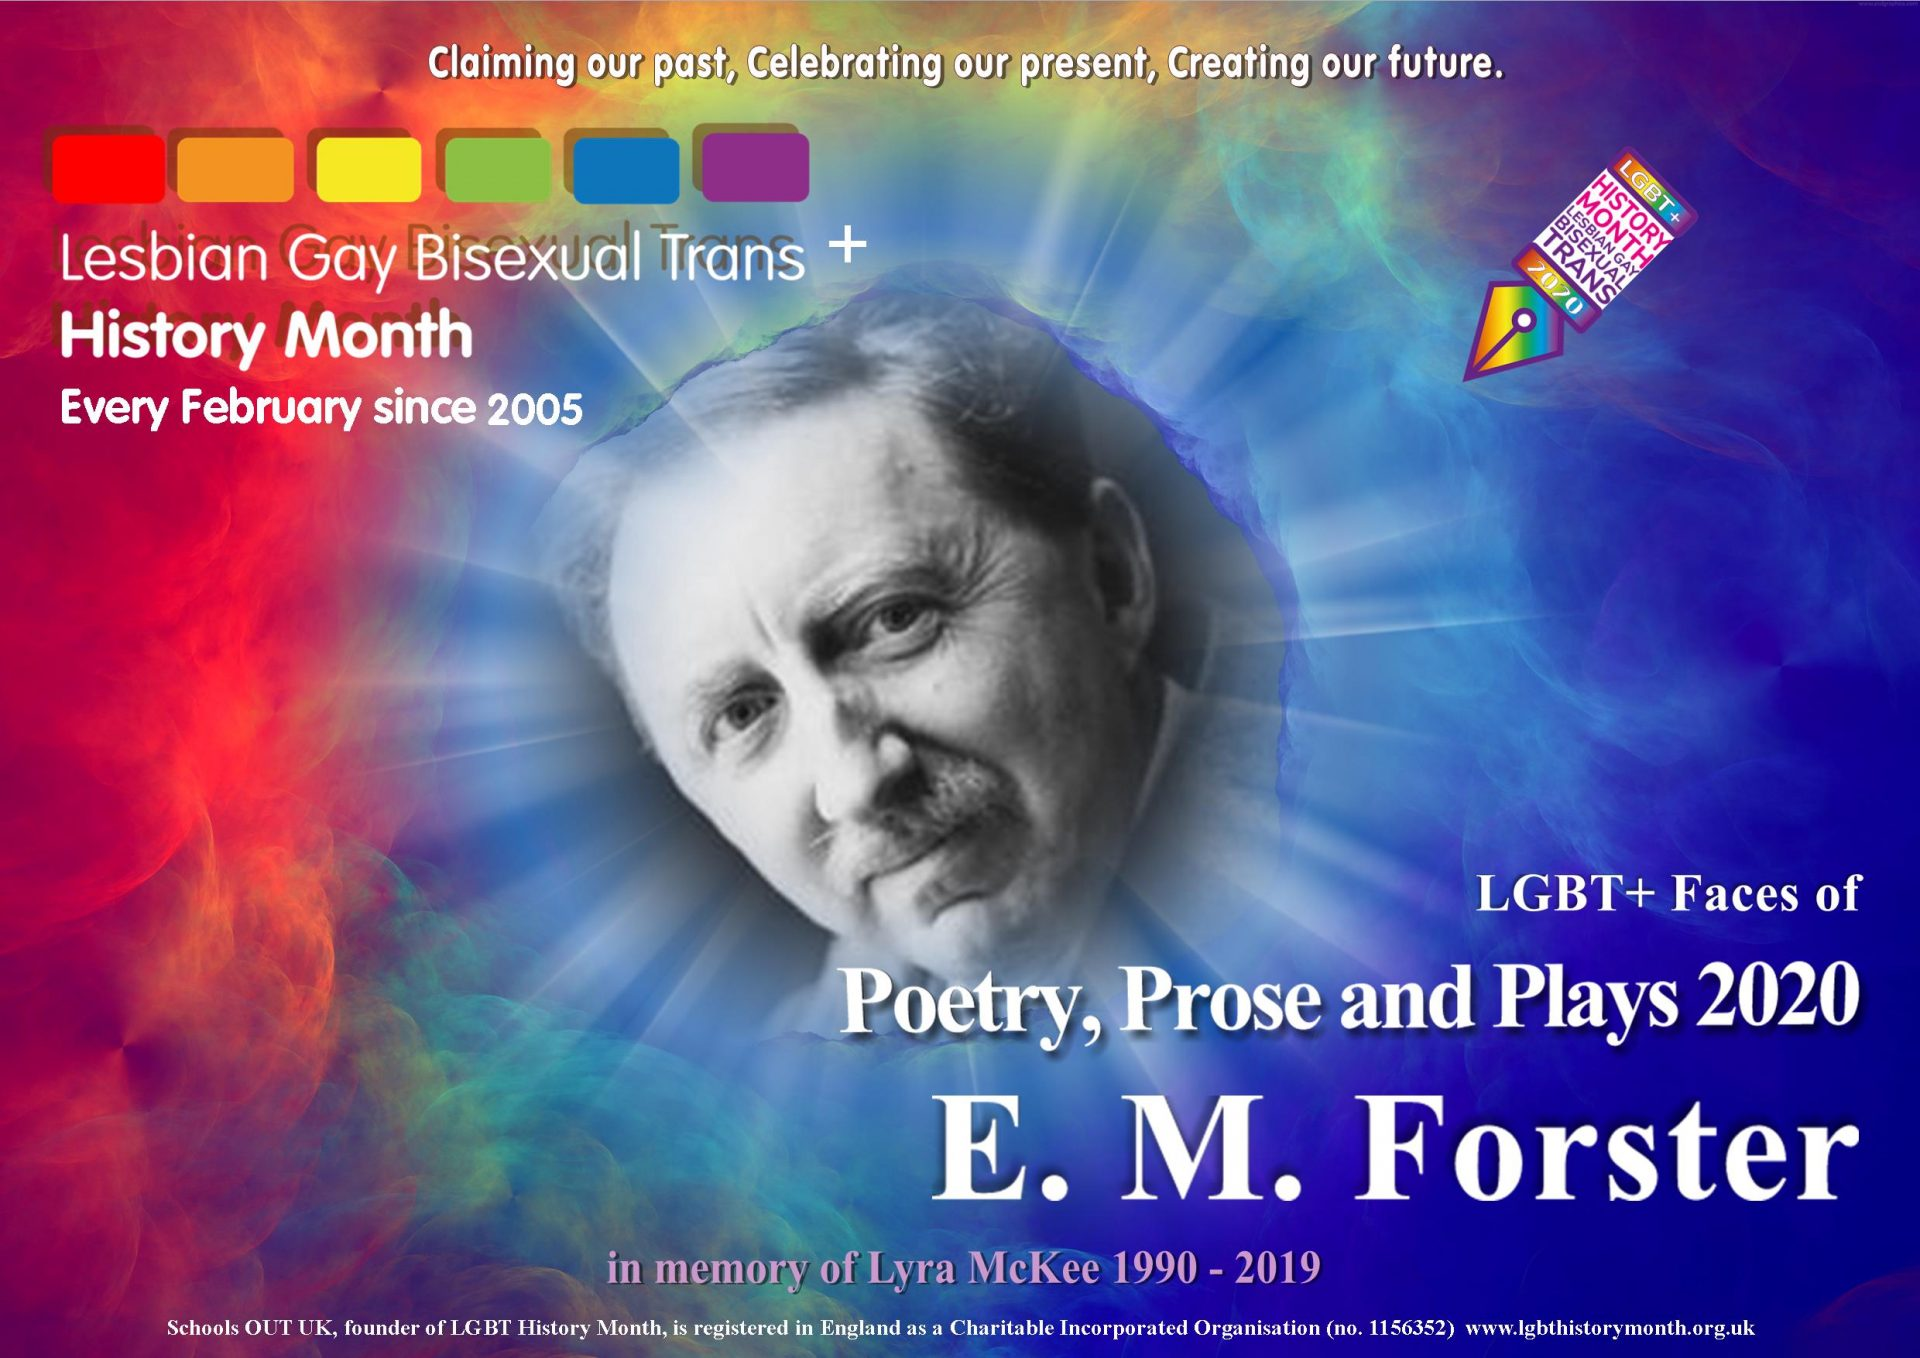 LGBT+ History Month 2020: E.M. Forster and Sarah Waters